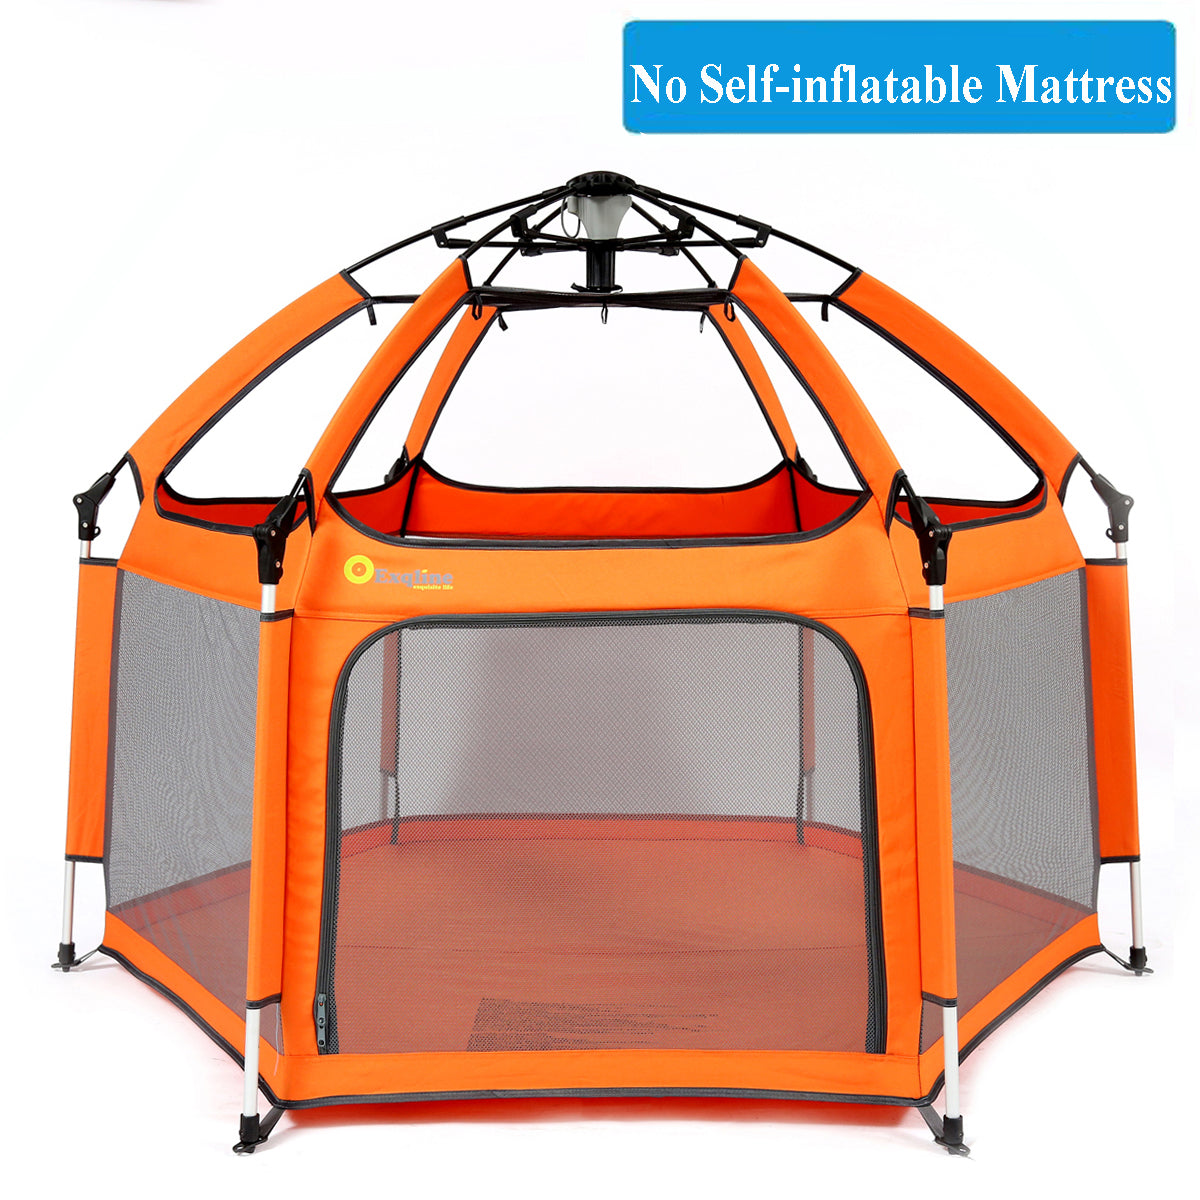 Baby Playpen with Self-Inflatable Mattress Foldable Best Kids Play Pen with UV Canopy for Home Traveling Beach Black Exqline Pop-n-Play Kids Safety Playpen 2019 Updated New Version